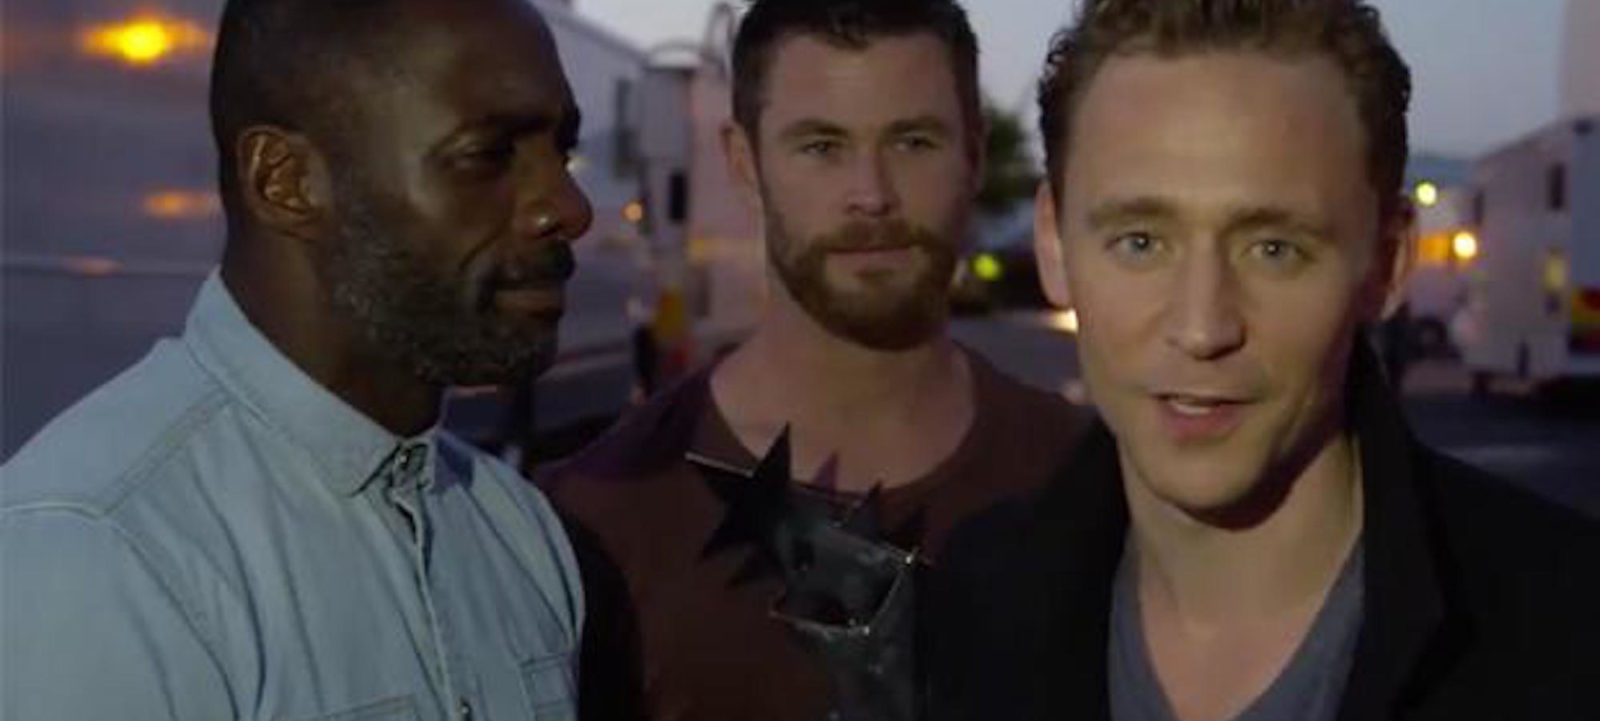 Idris Elba, Chris Hemsworth and Tom Hiddleston